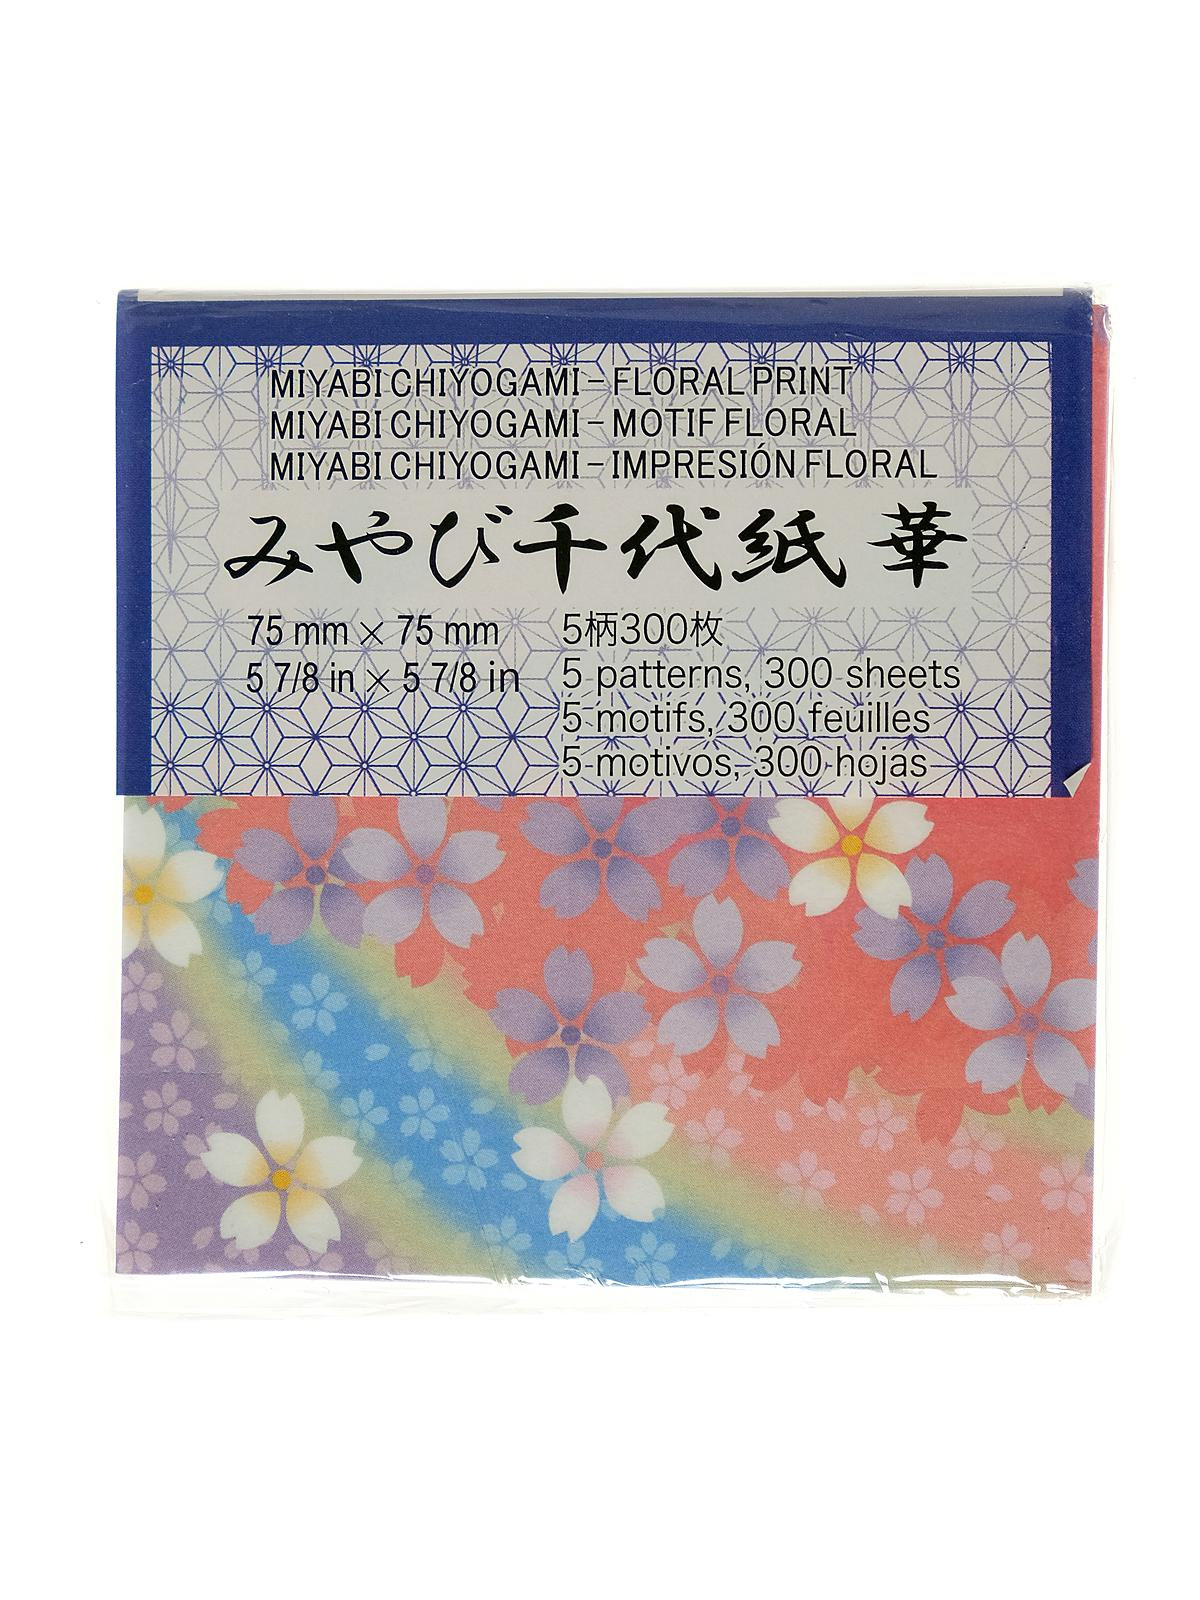 Origami Paper 3 In. X 3 In. Miyabi Chiyogami 300 Sheets